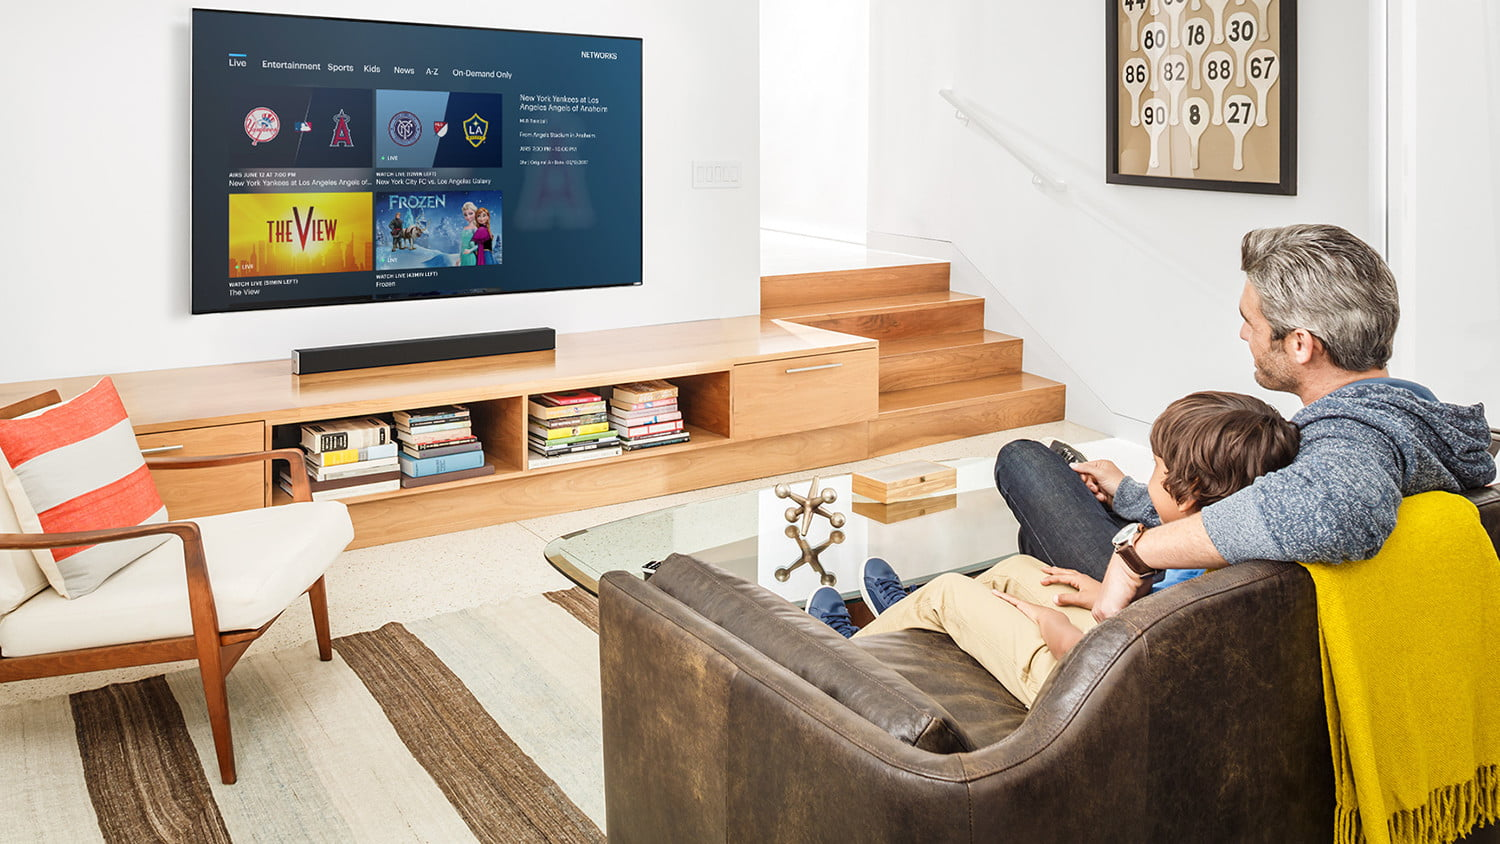 The Best Live TV Streaming Services: PlayStation Vue, Hulu, Sling TV |  Digital Trends